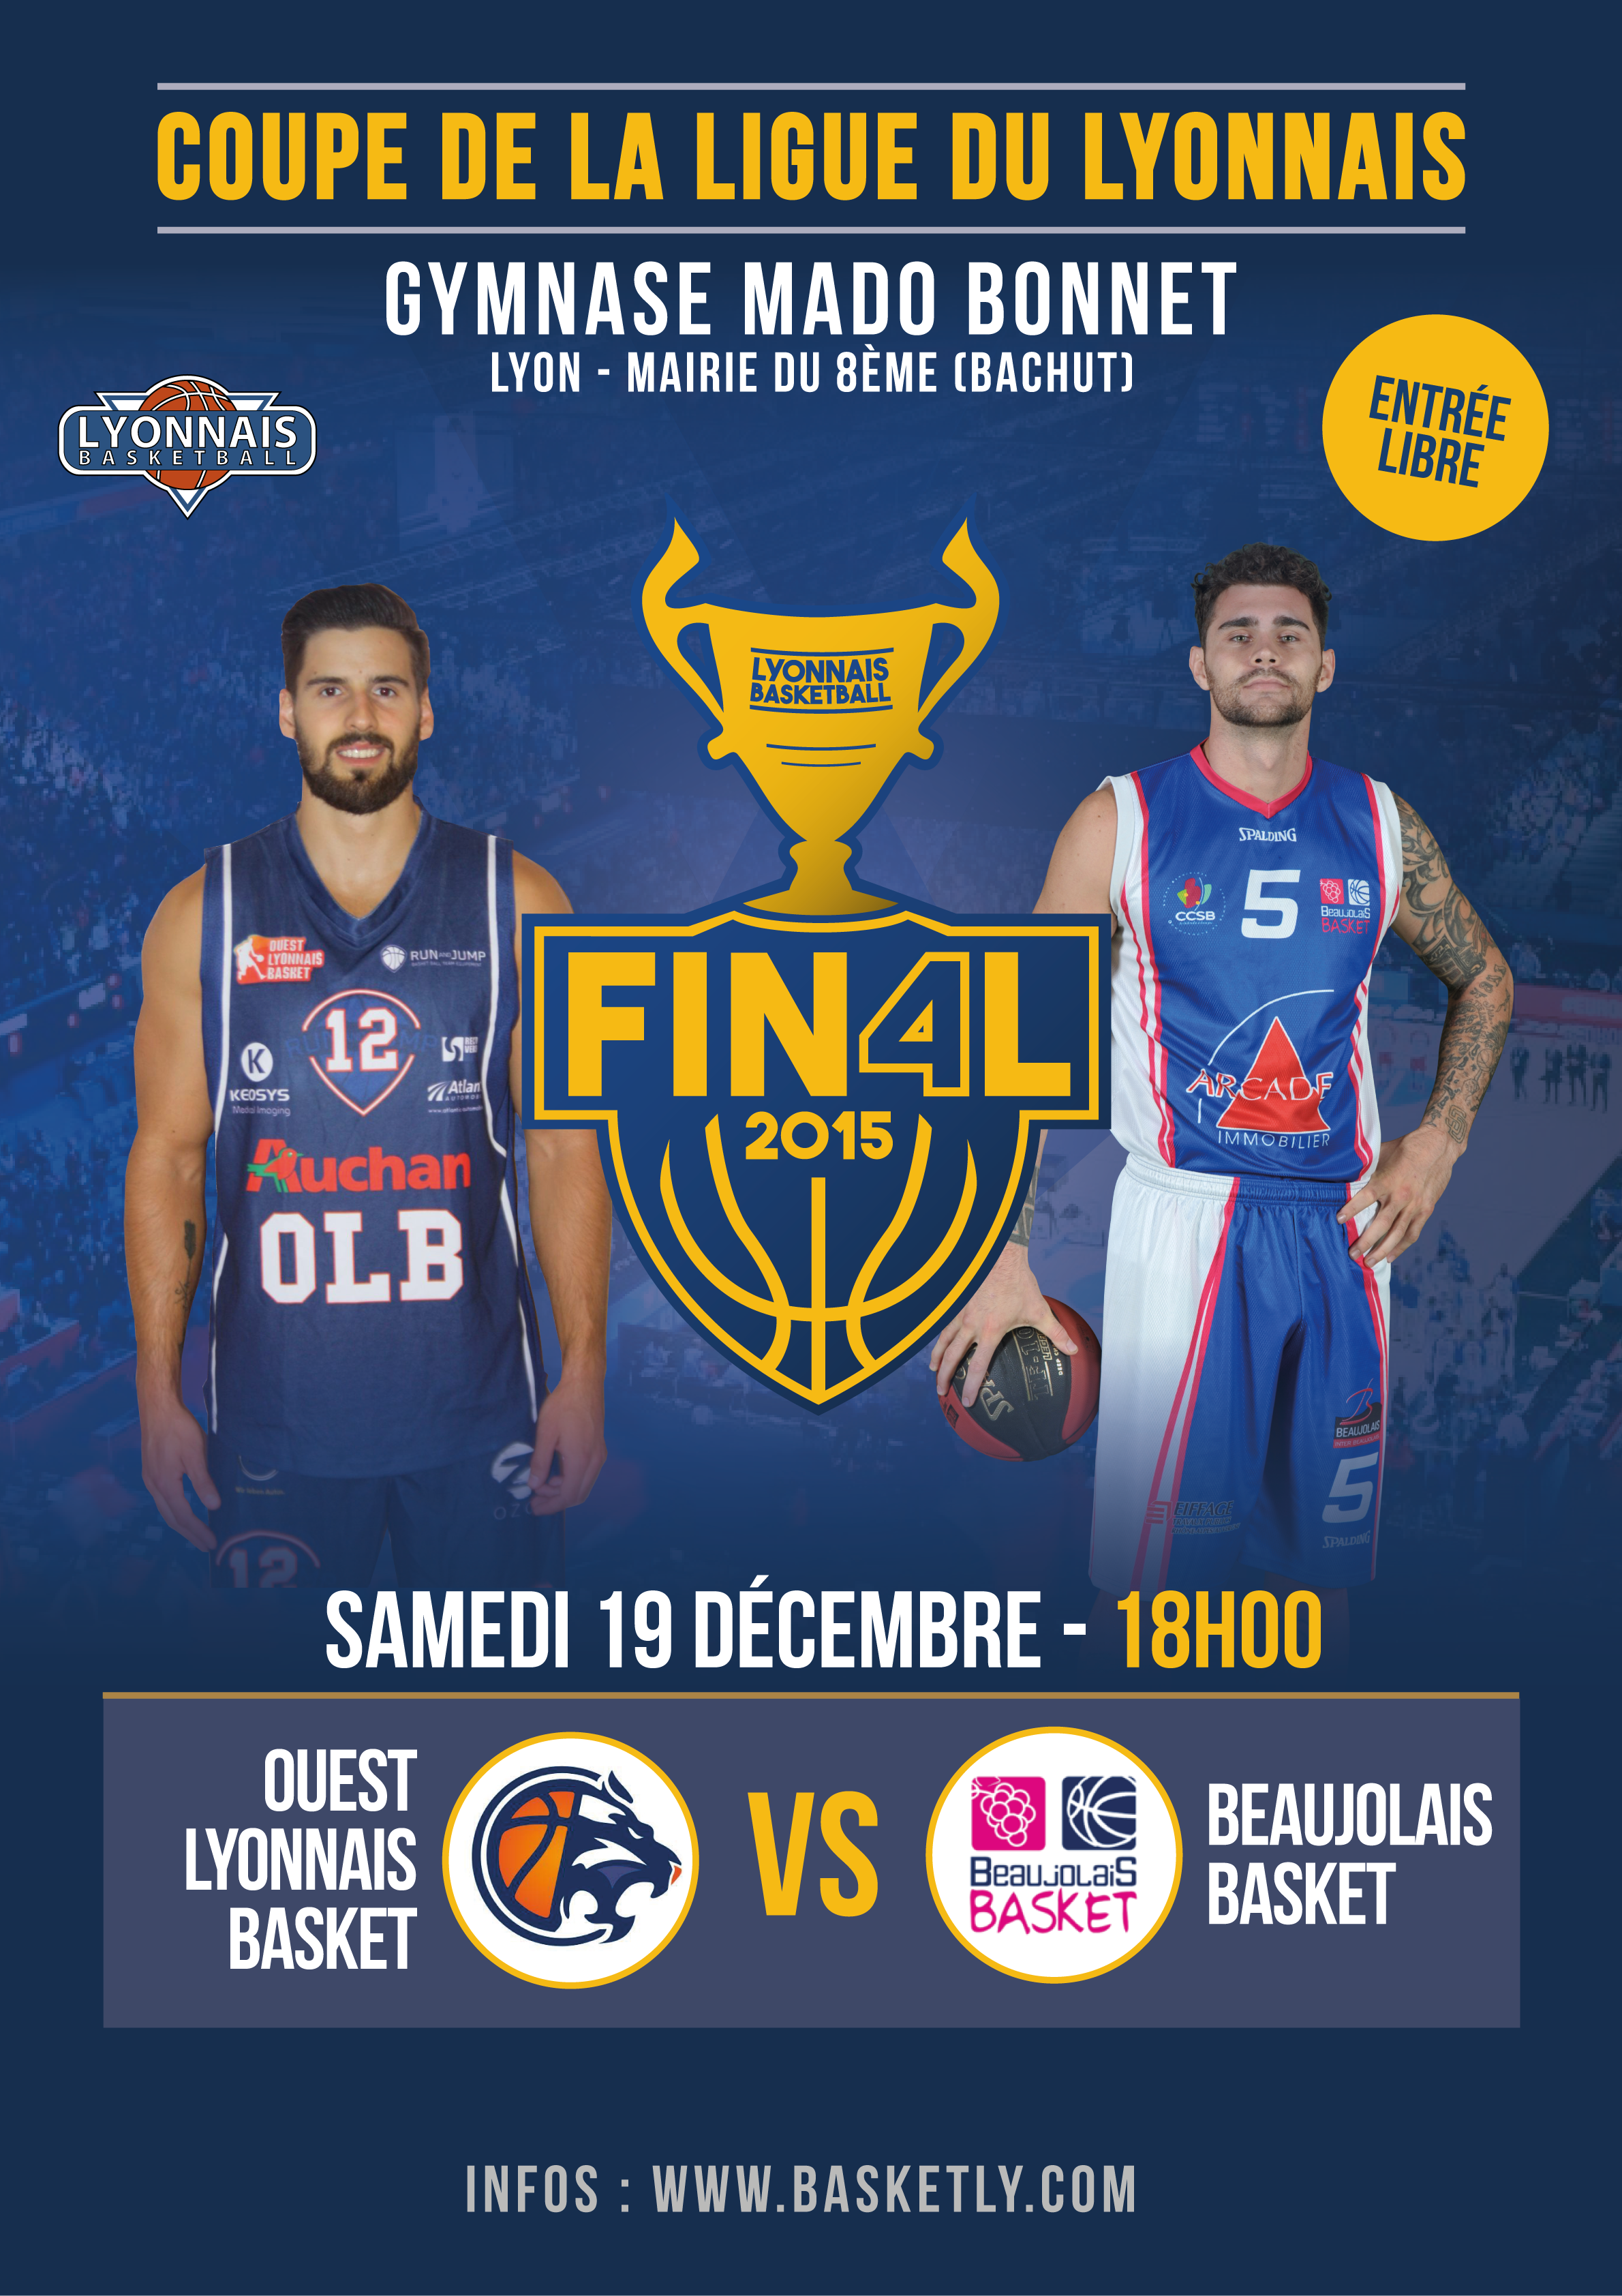 OLB-vs-Beaujolais-Basket